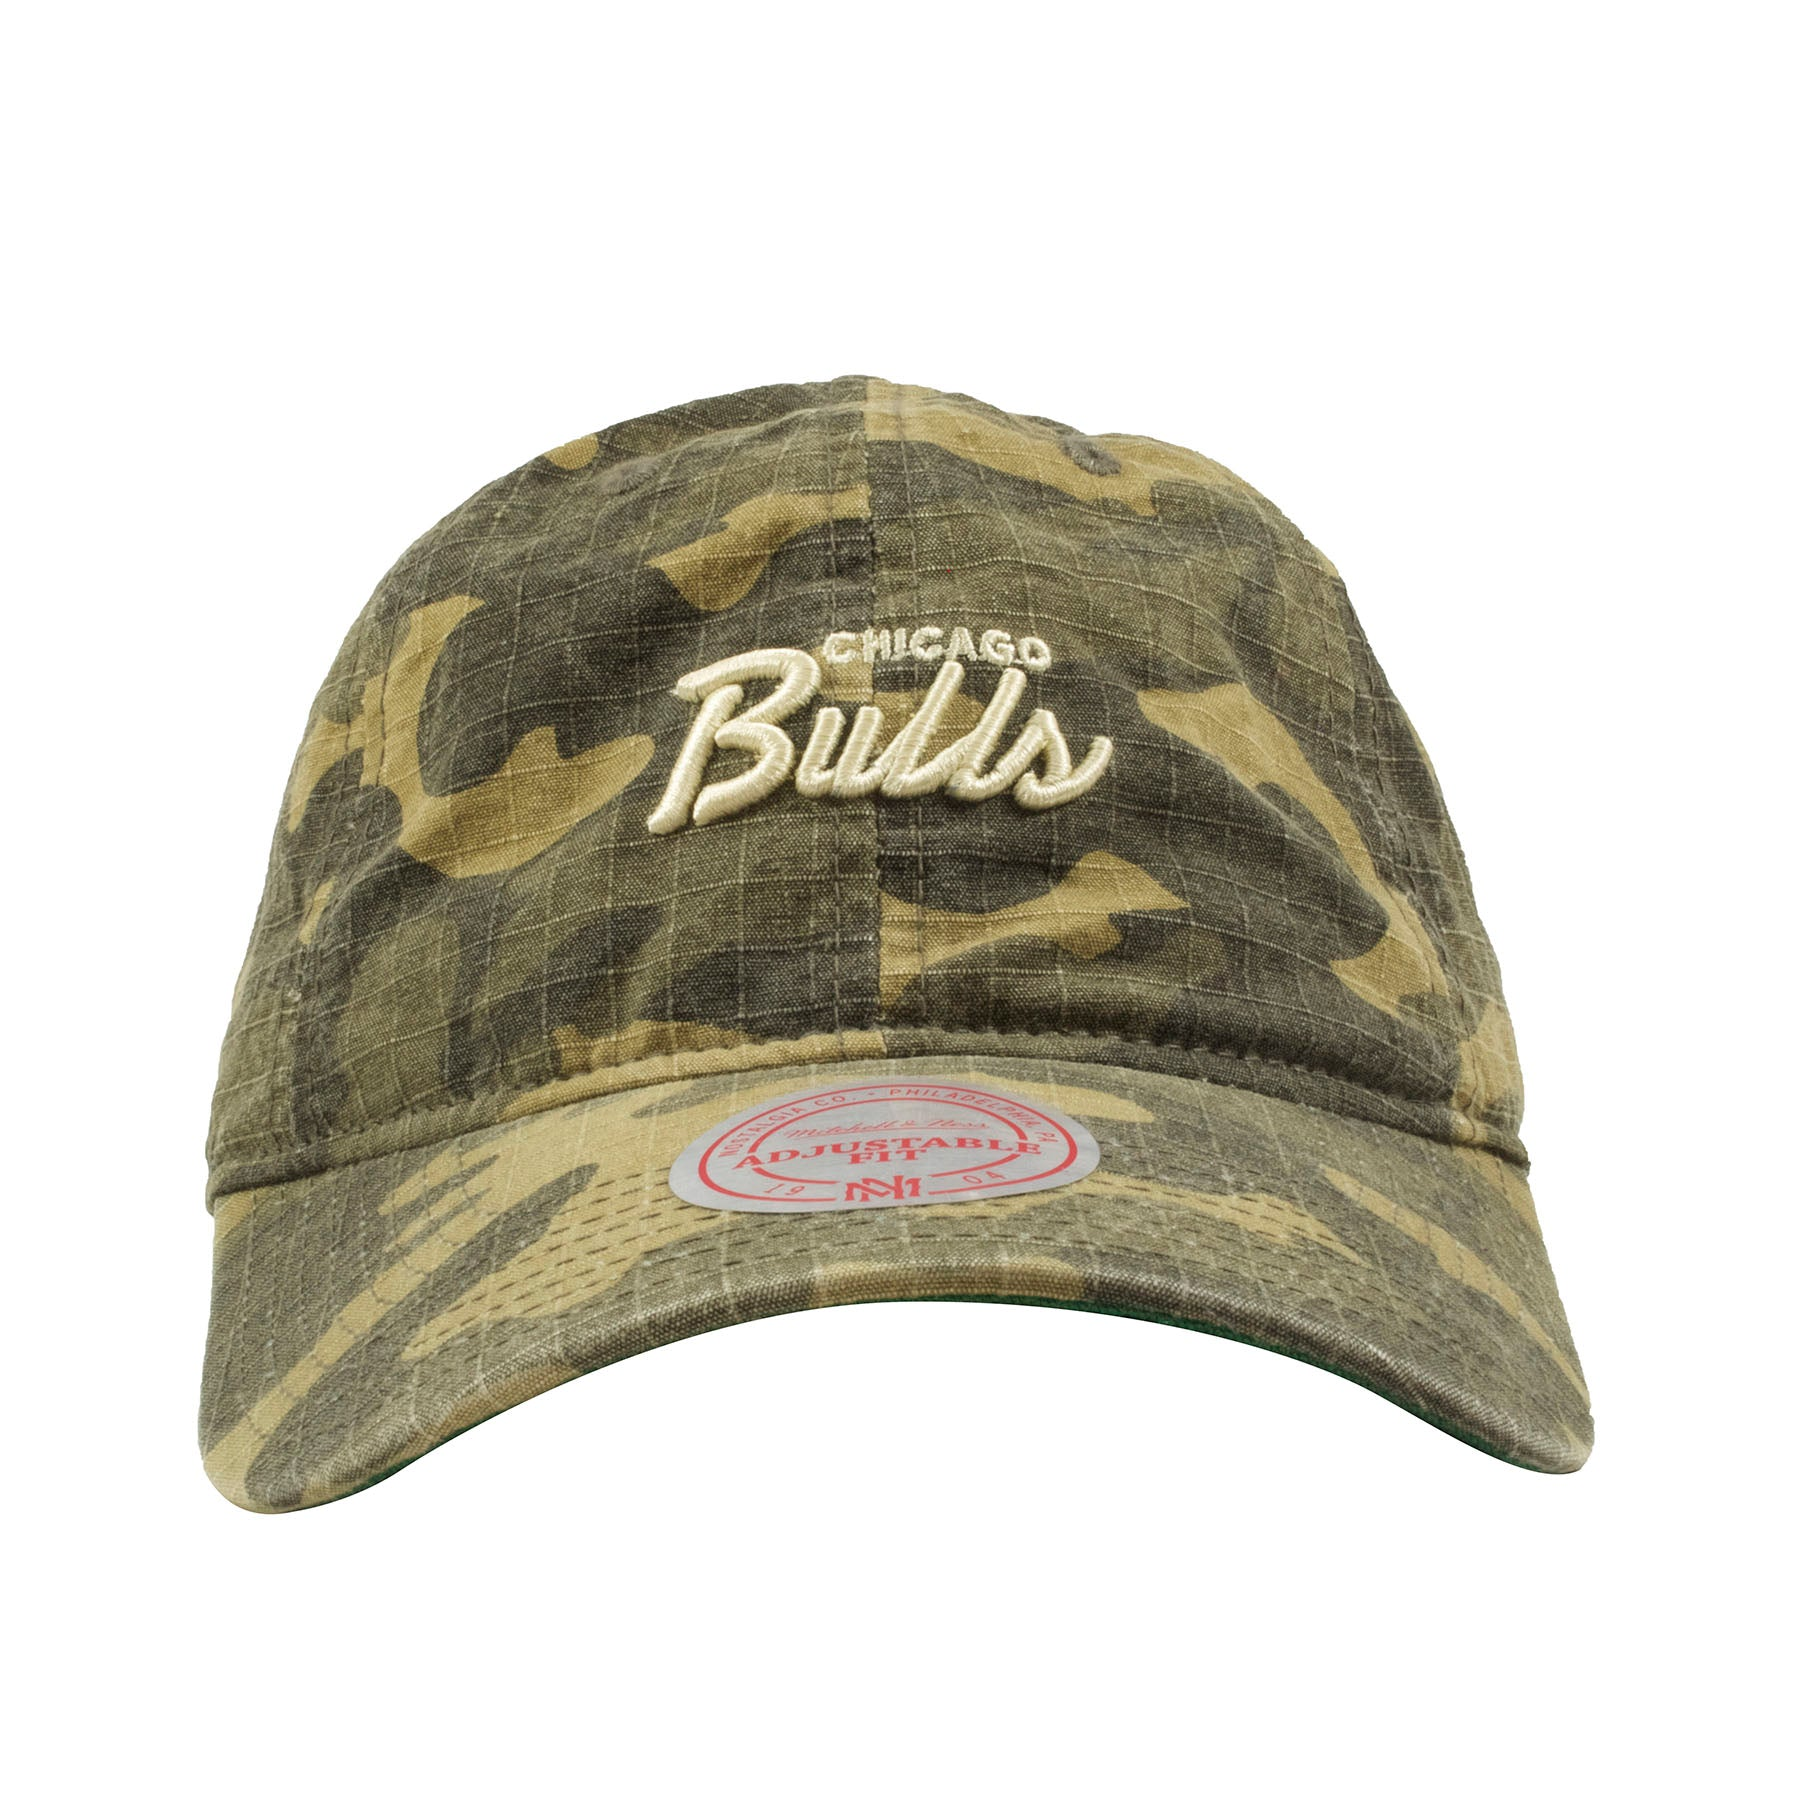 d6bde4d42 Chicago Bulls Woodland Camouflage Mitchell and Ness Snapback Dad Hat